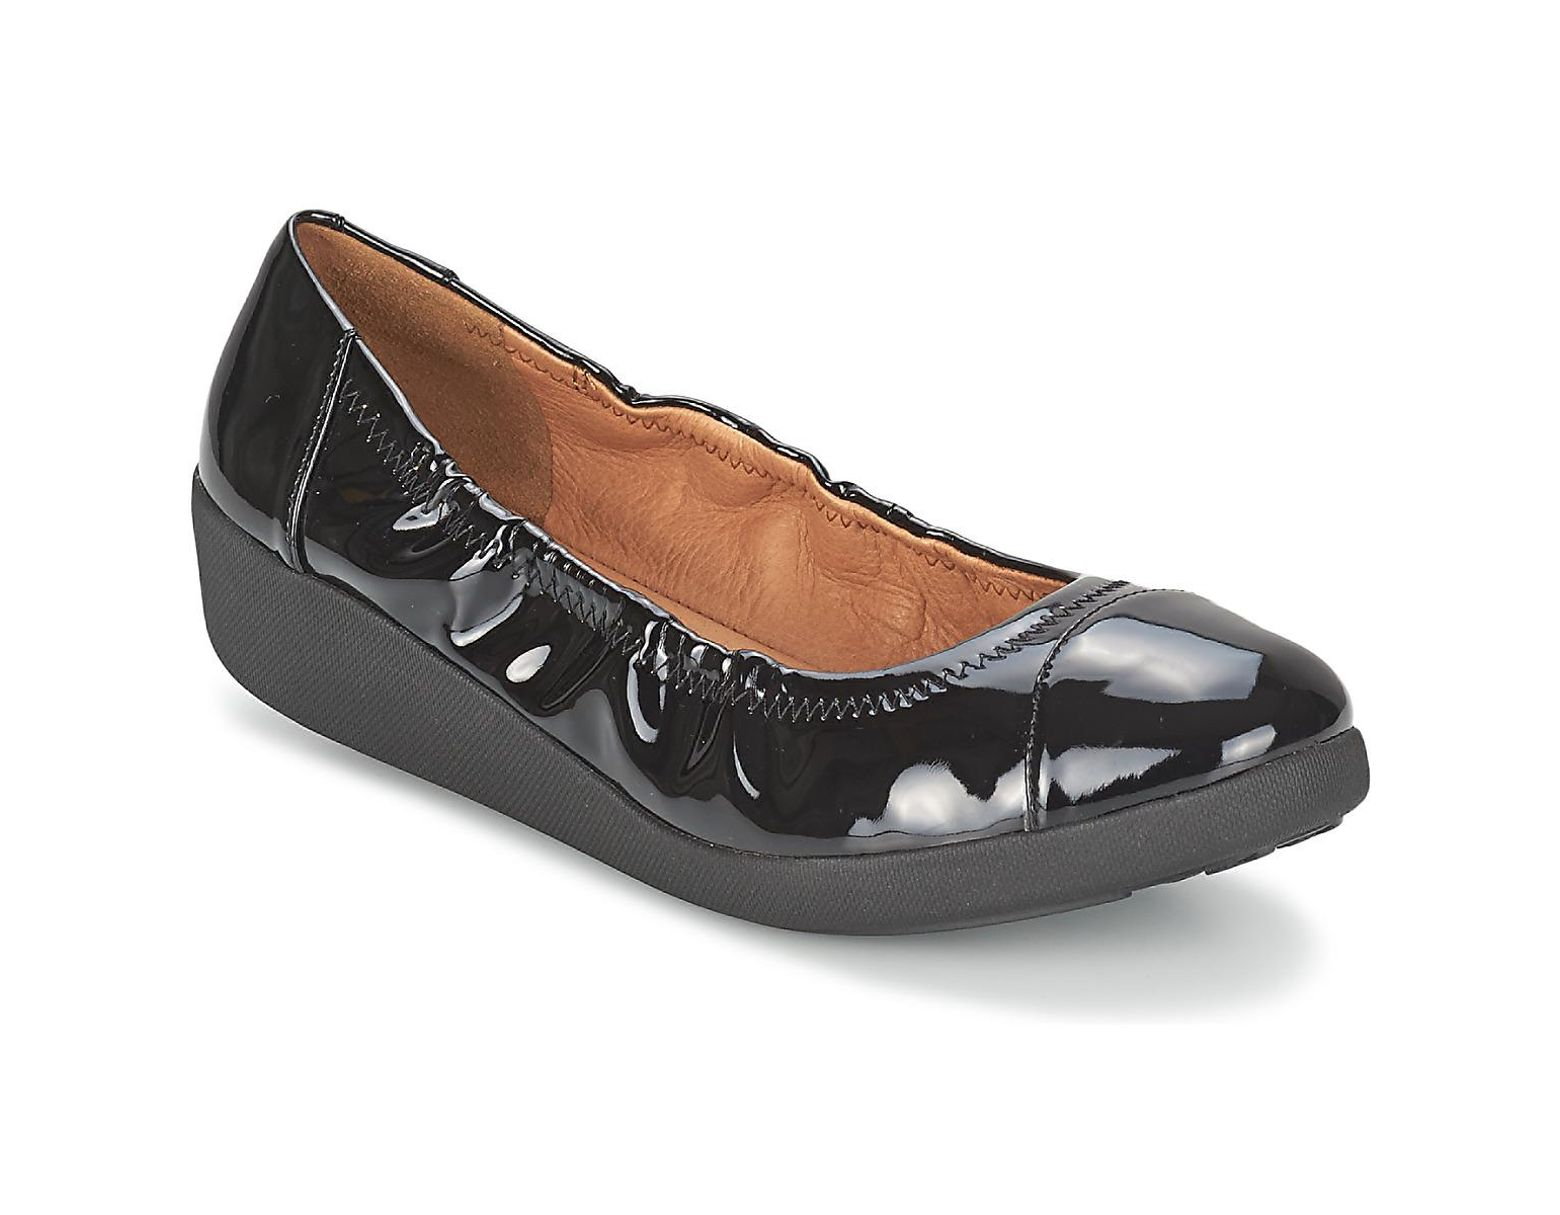 7138a97b23bbc Fitflop F-pop Ballerina Patent Women's Shoes (pumps / Ballerinas) In Black  in Black - Lyst